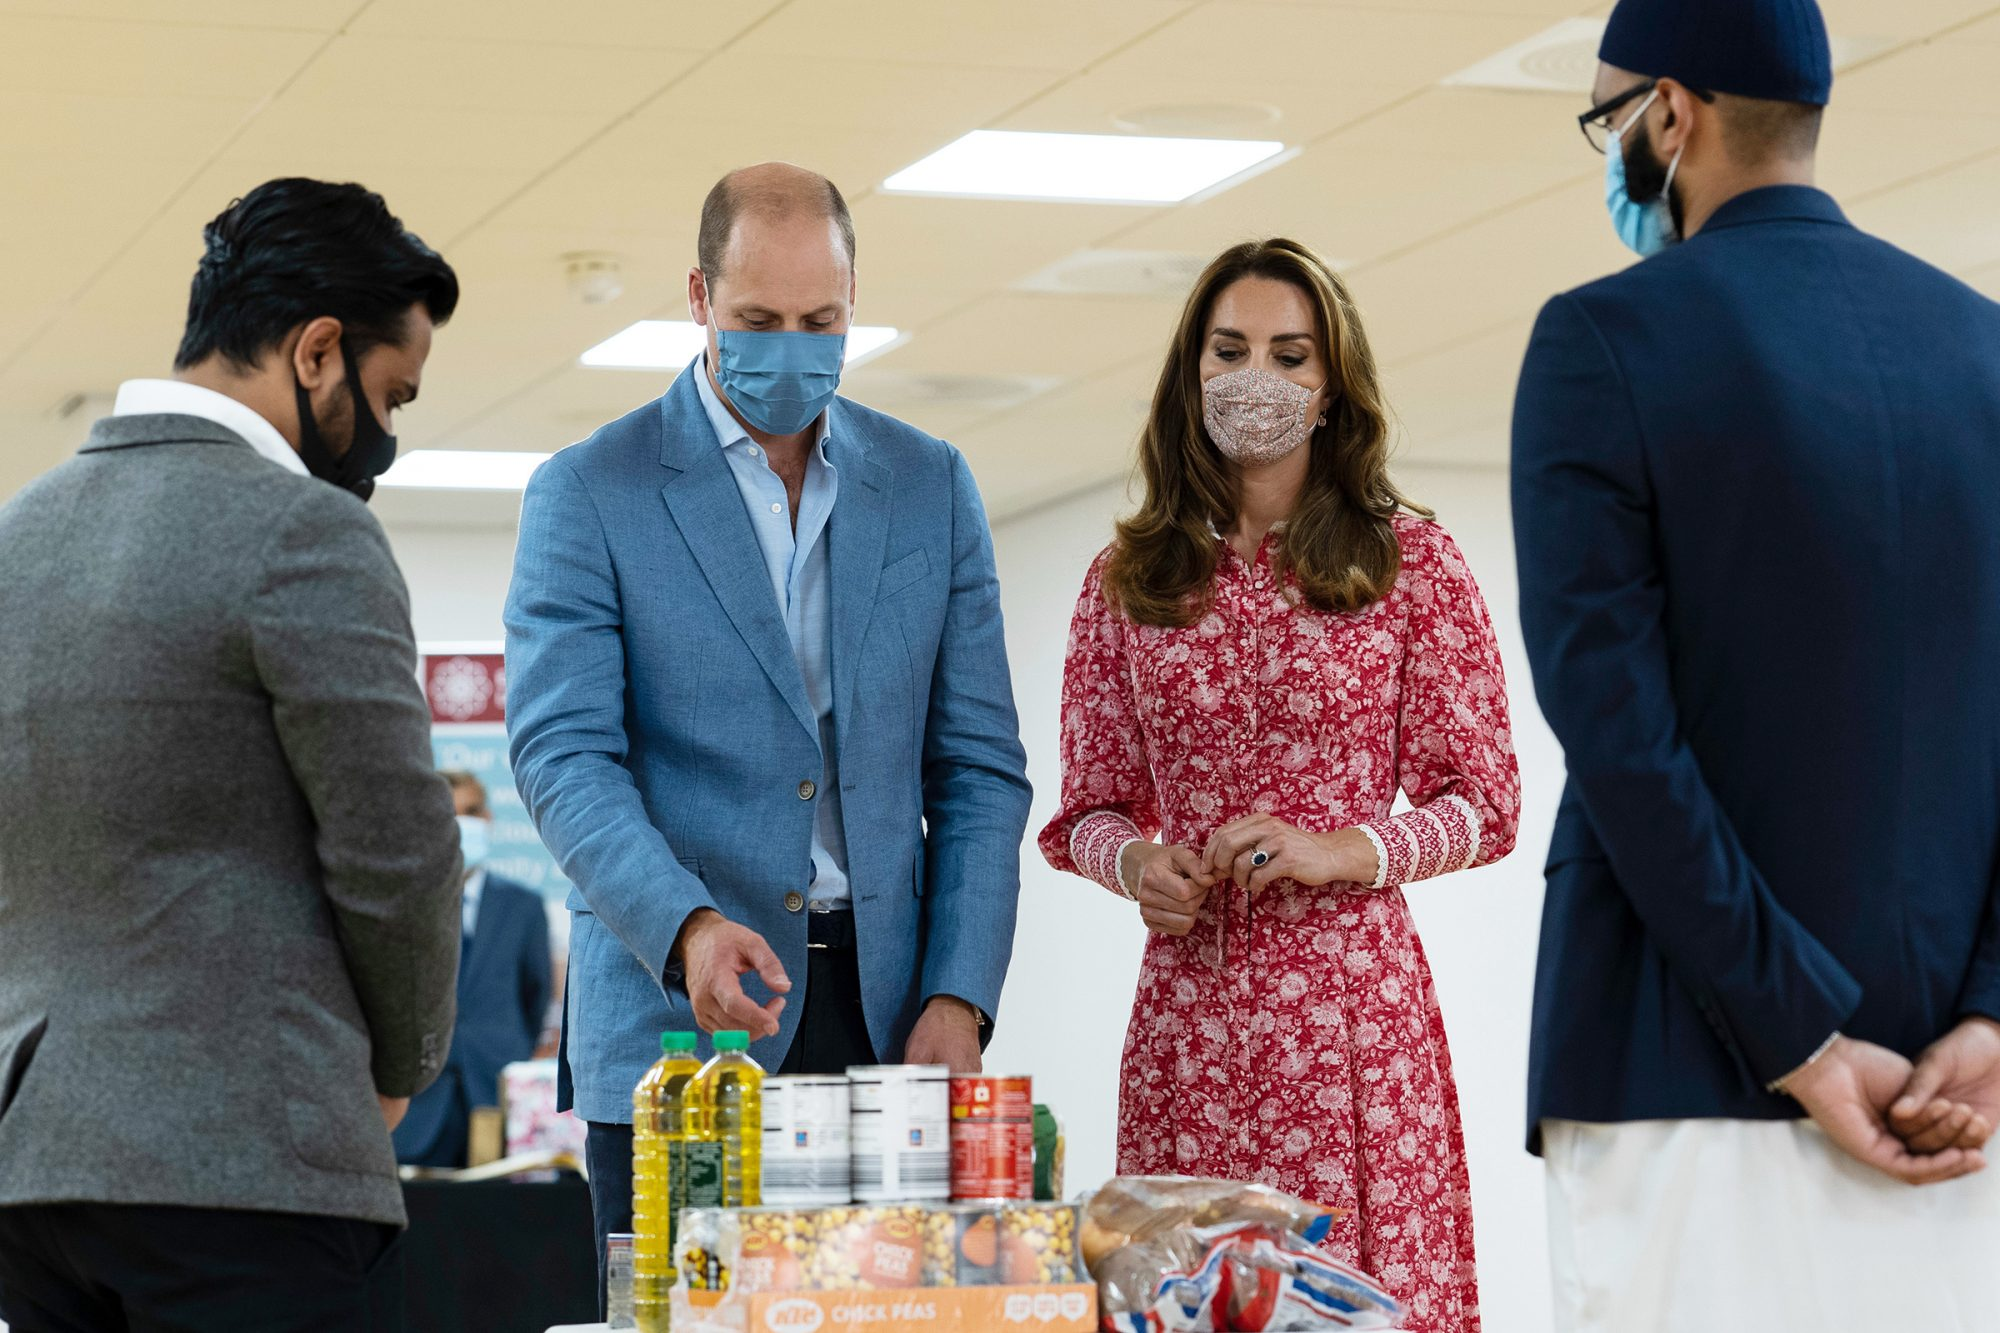 Prince William and Catherine Duchess of Cambridge visit The East London Mosque, UK - 15 Sep 2020